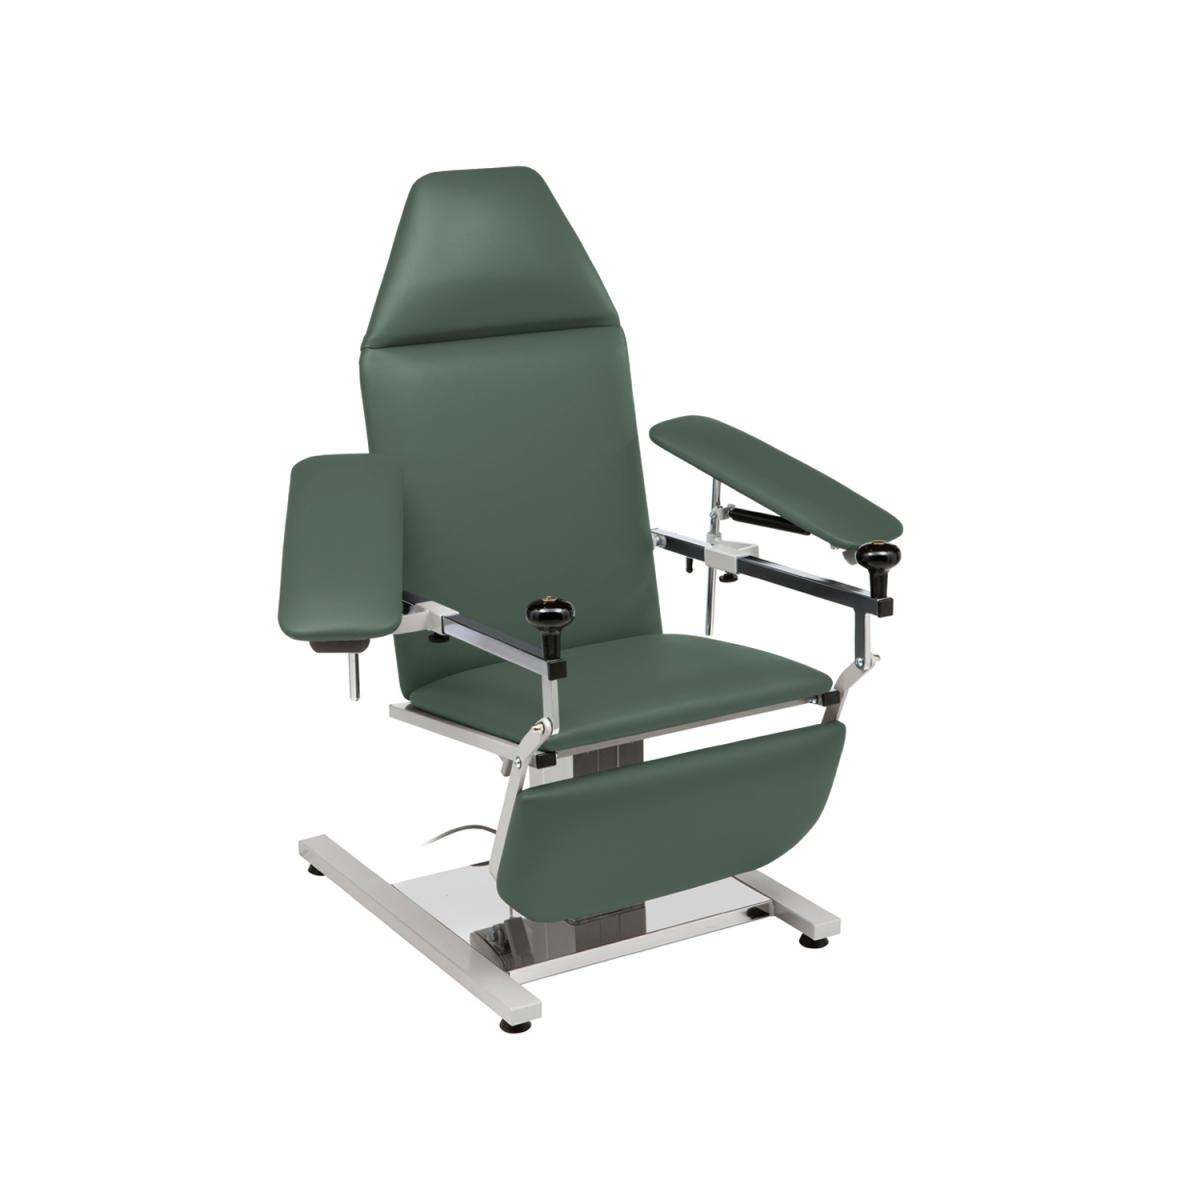 Sampling chair 413